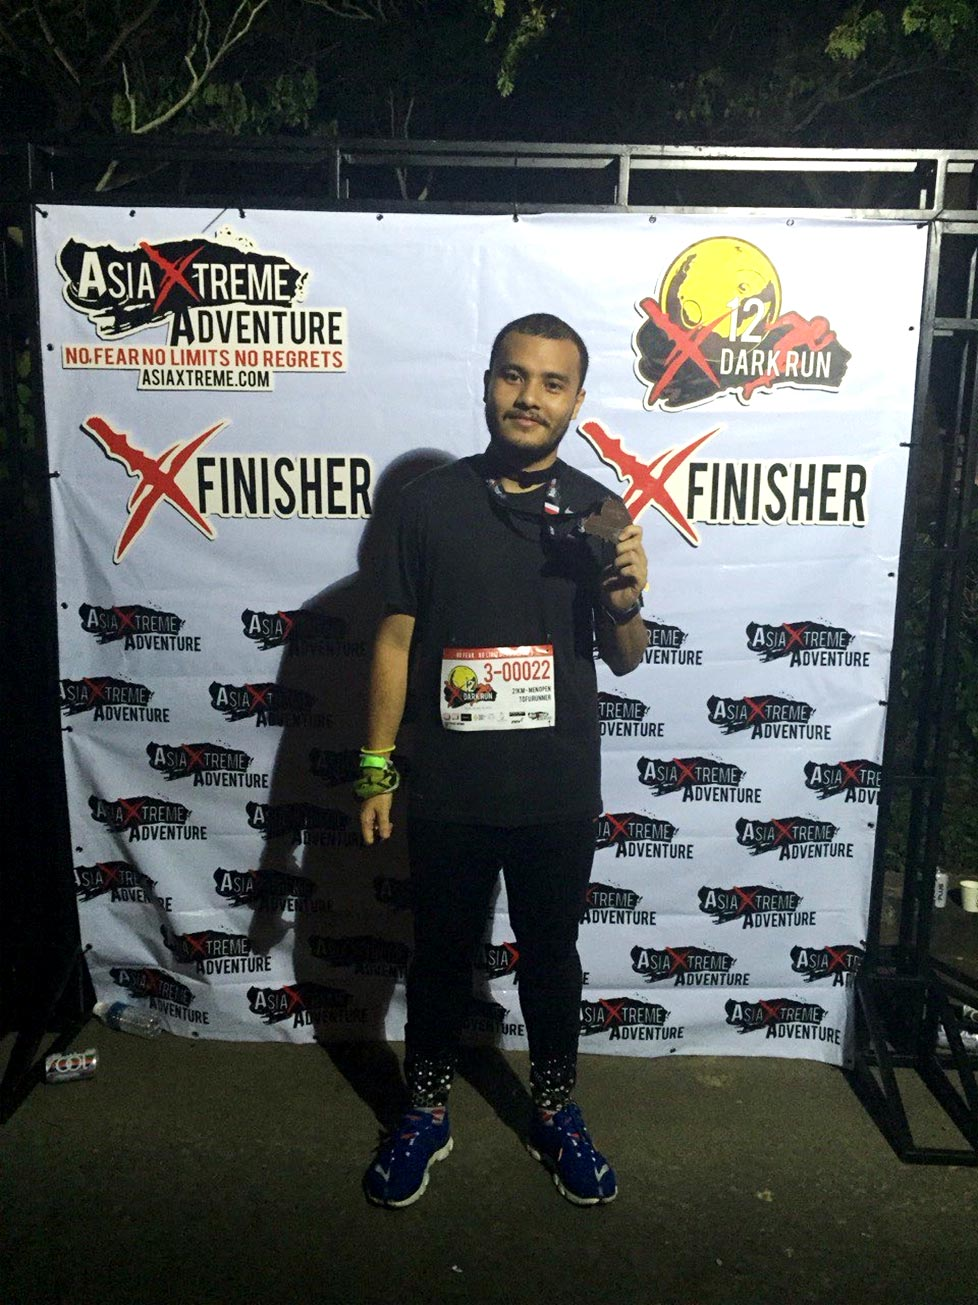 Asia Xtreme Adventure X12 Dark Run: On the Road in the Black Velvet Night